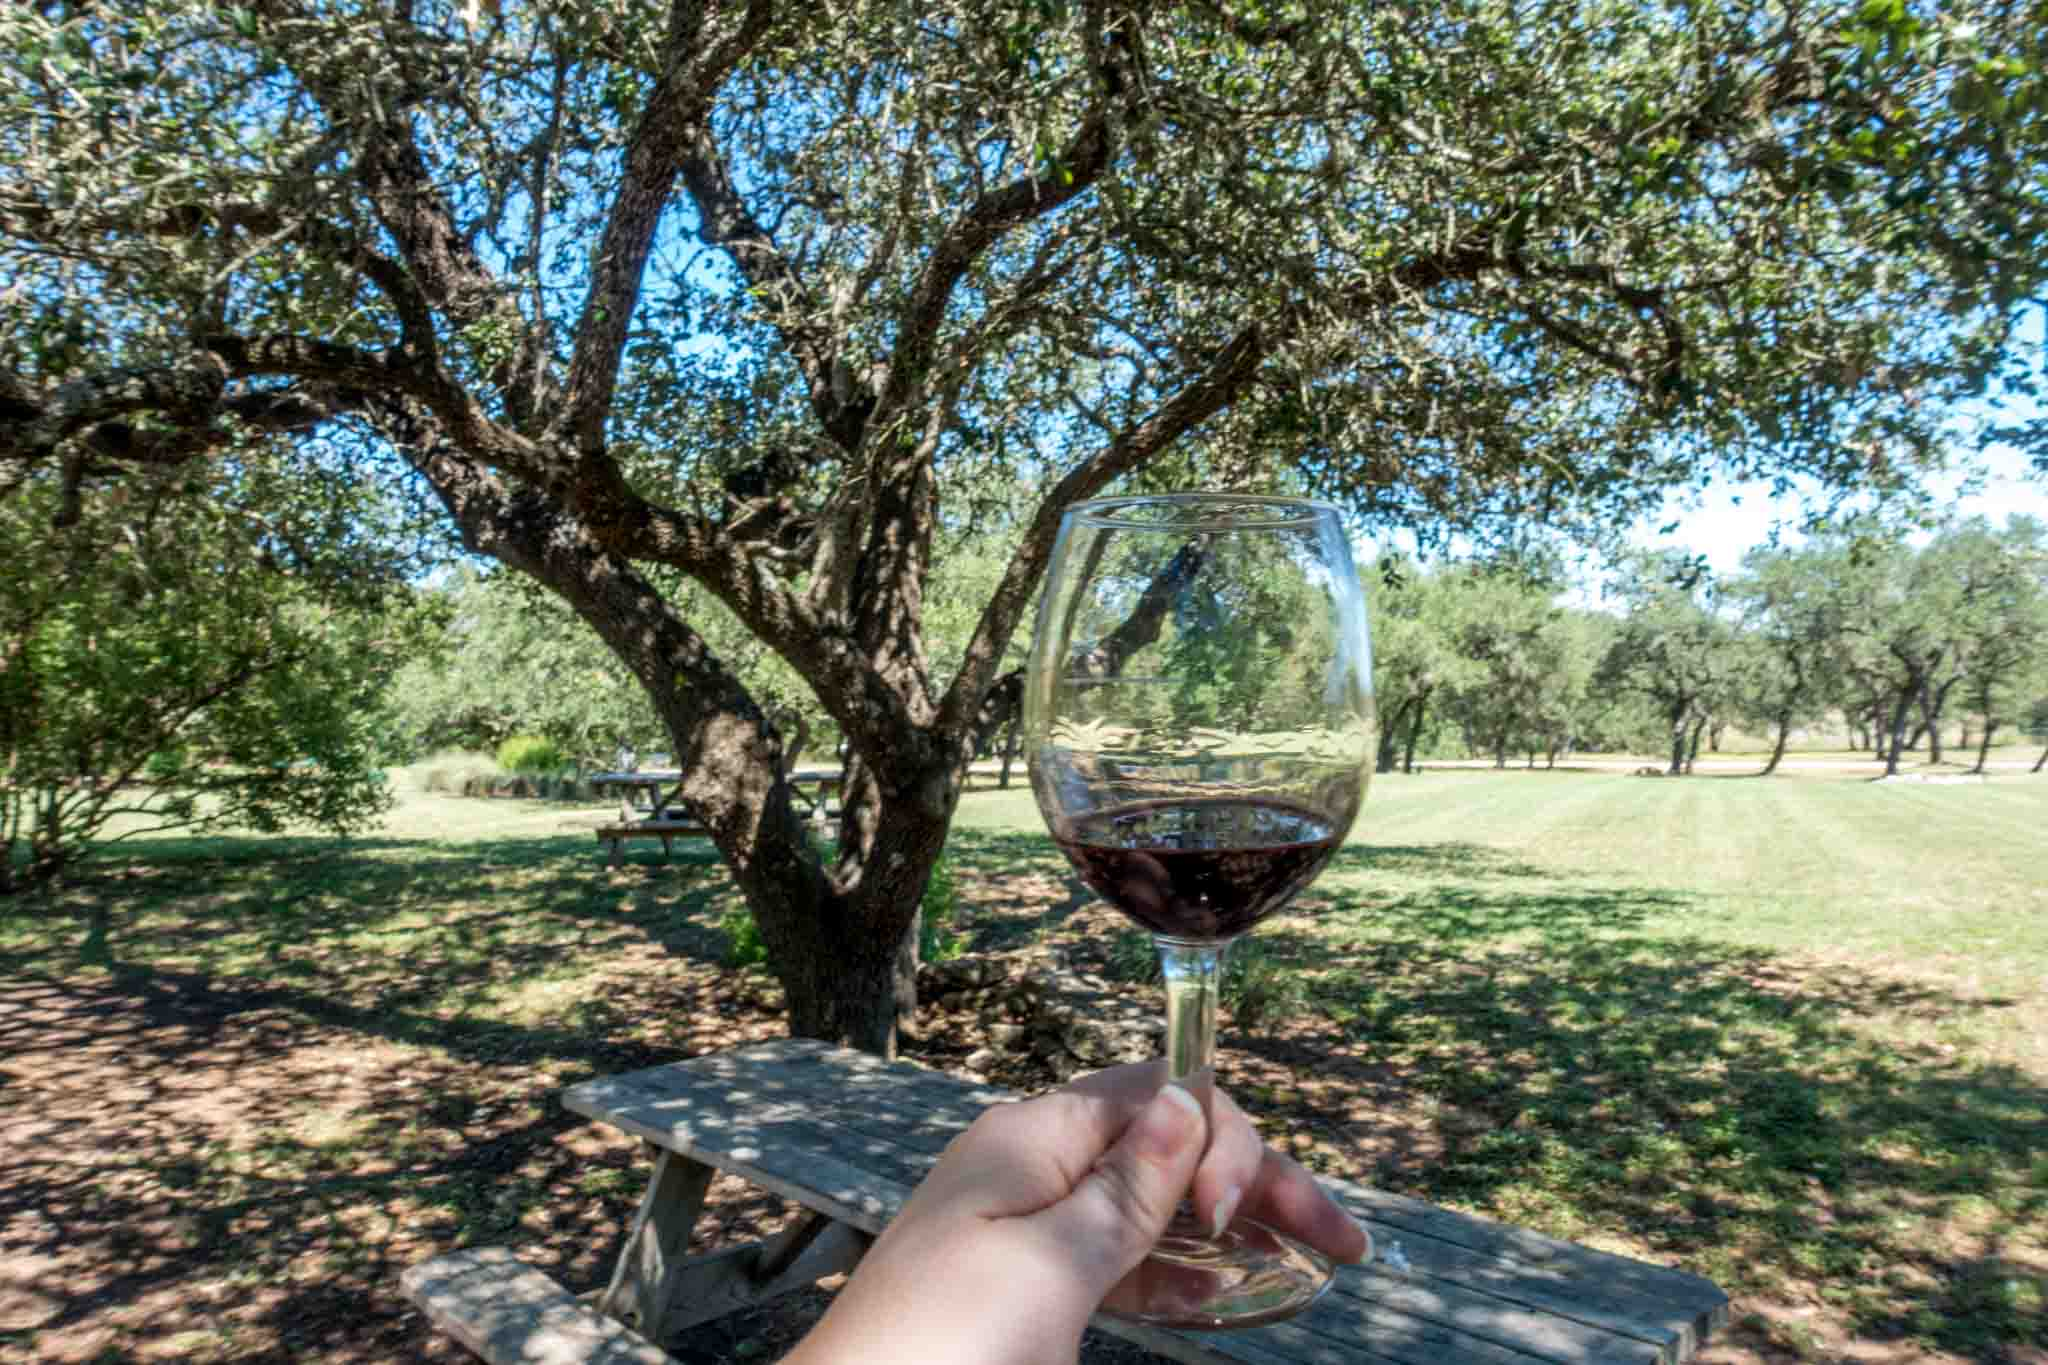 Hand holding a glass of red wine under a tree